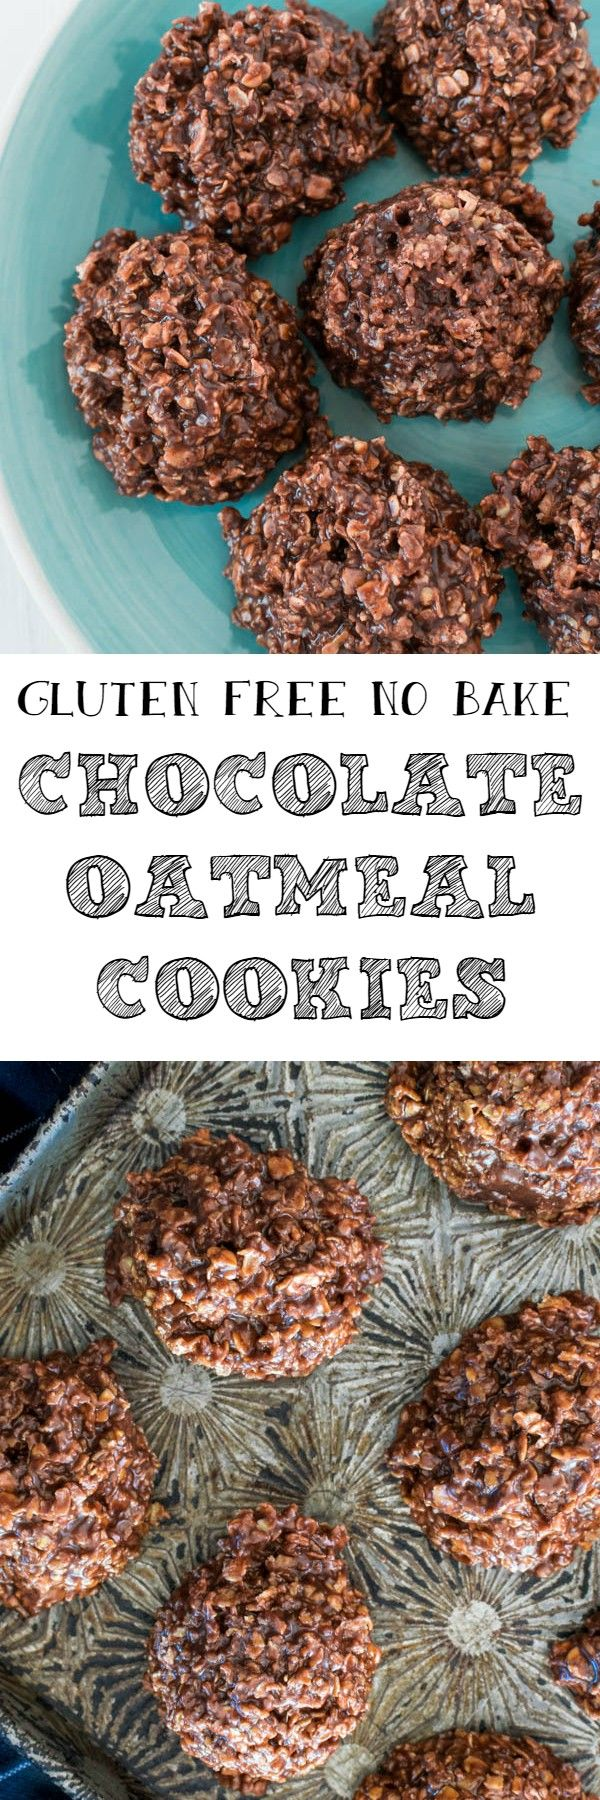 These No Bake Chocolate Oatmeal Cookies are perfect for when you have a sweet tooth that needs satisfying immediately. It's also a great first recipe for getting kids involved in the kitchen, since you don't even have to turn on the stove.